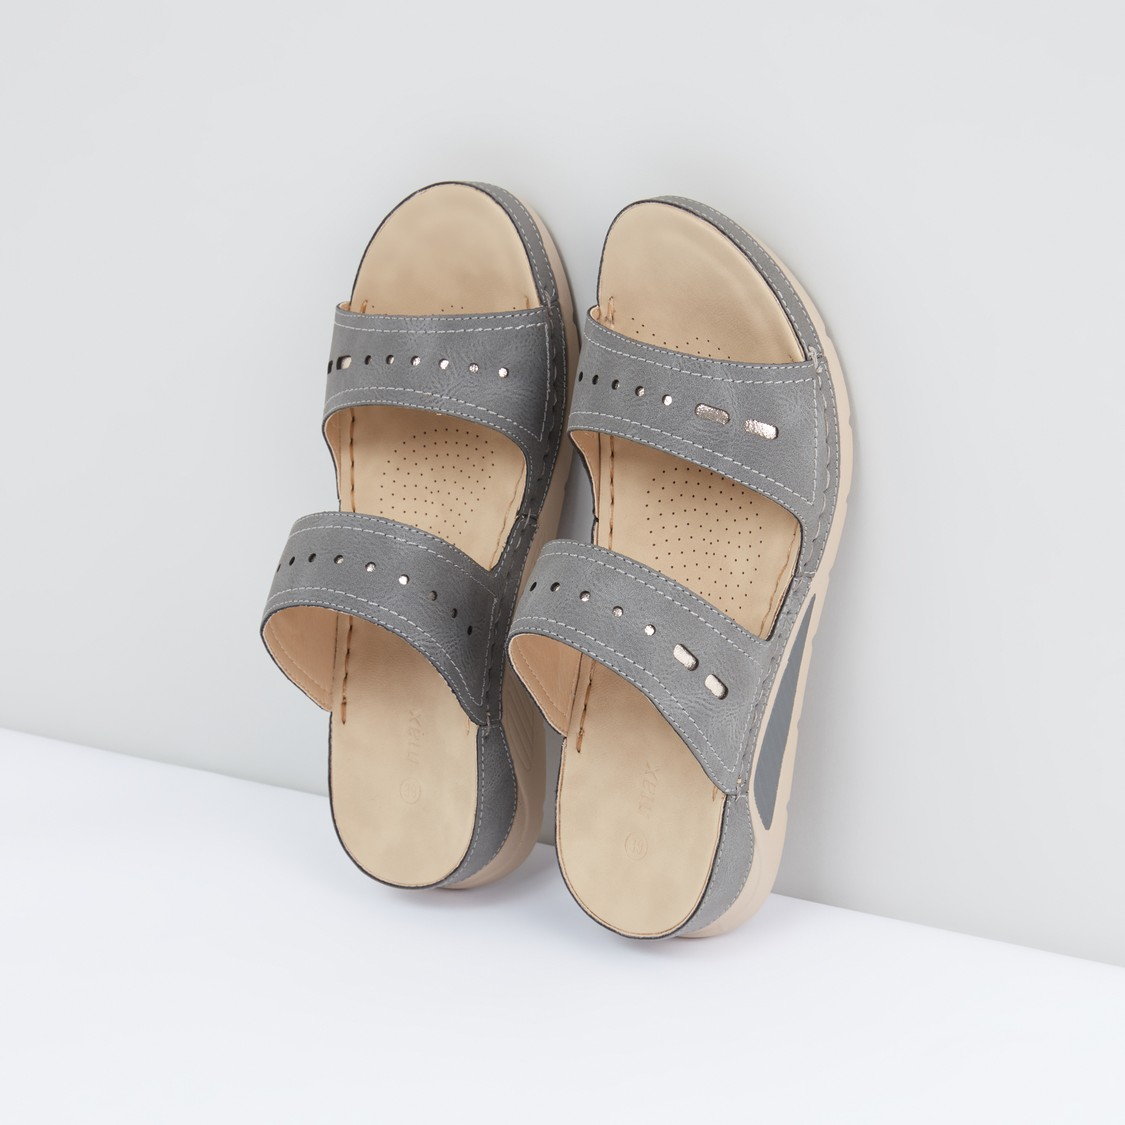 Cutout and Stitch Detail Sandals